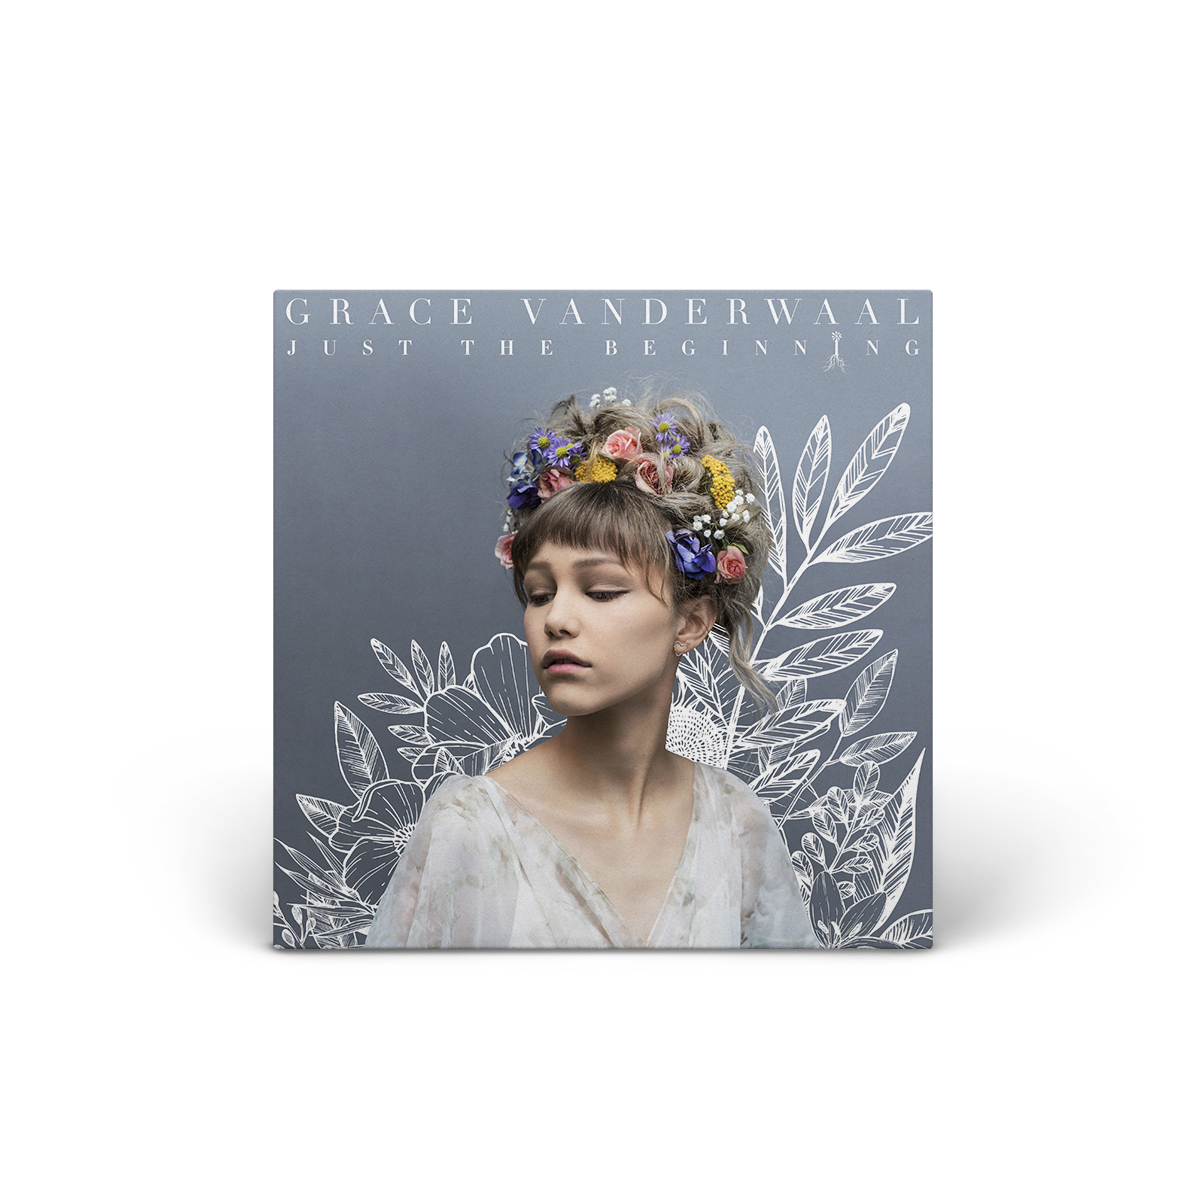 Grace Vanderwaal Just The Beginning (CD or Digital)